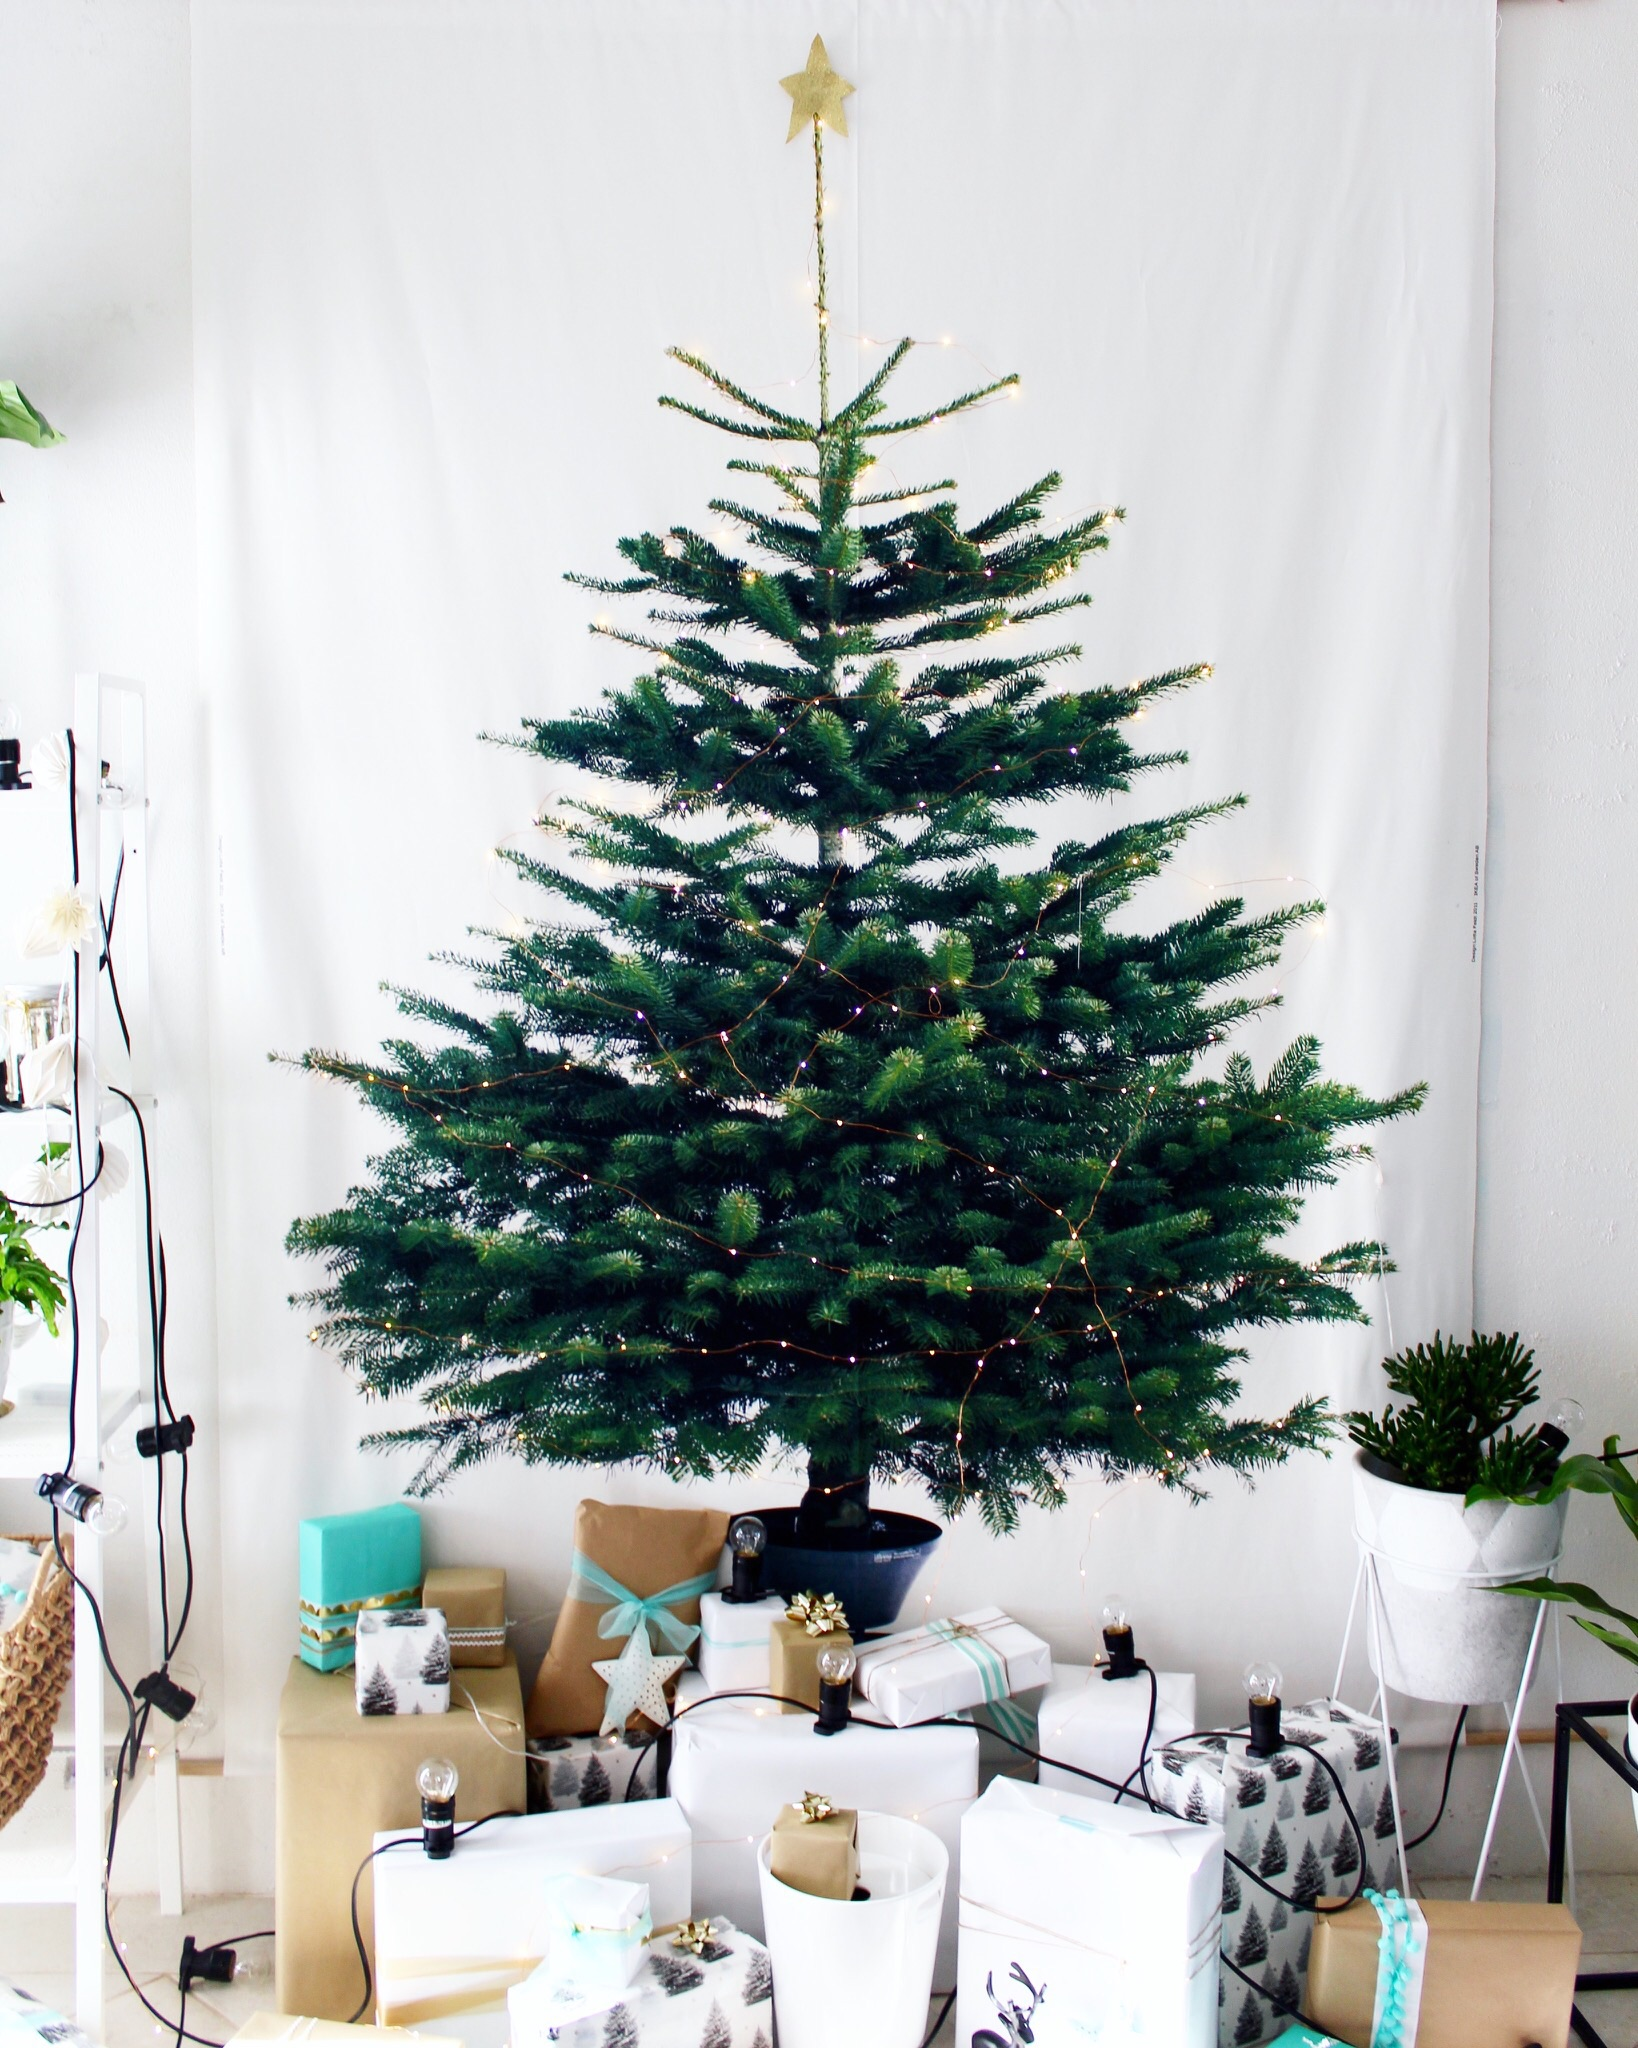 ikea christmas decorations christmas lights card and decore. Black Bedroom Furniture Sets. Home Design Ideas